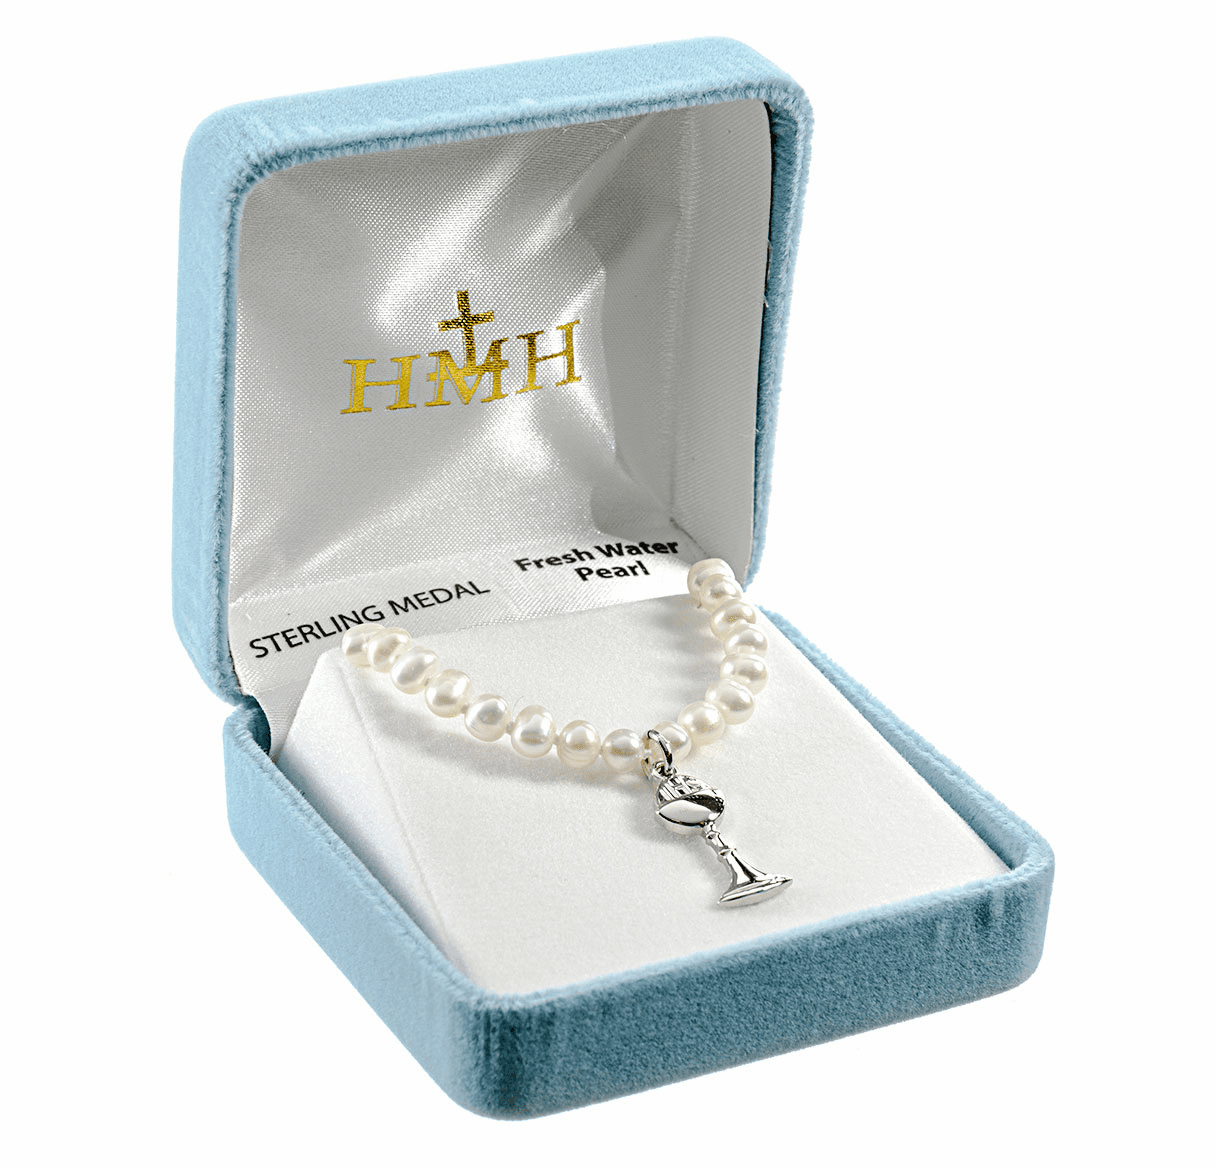 HMH Religious Communion Chalice Shaped Sterling Silver Freshwater Pearls Necklace